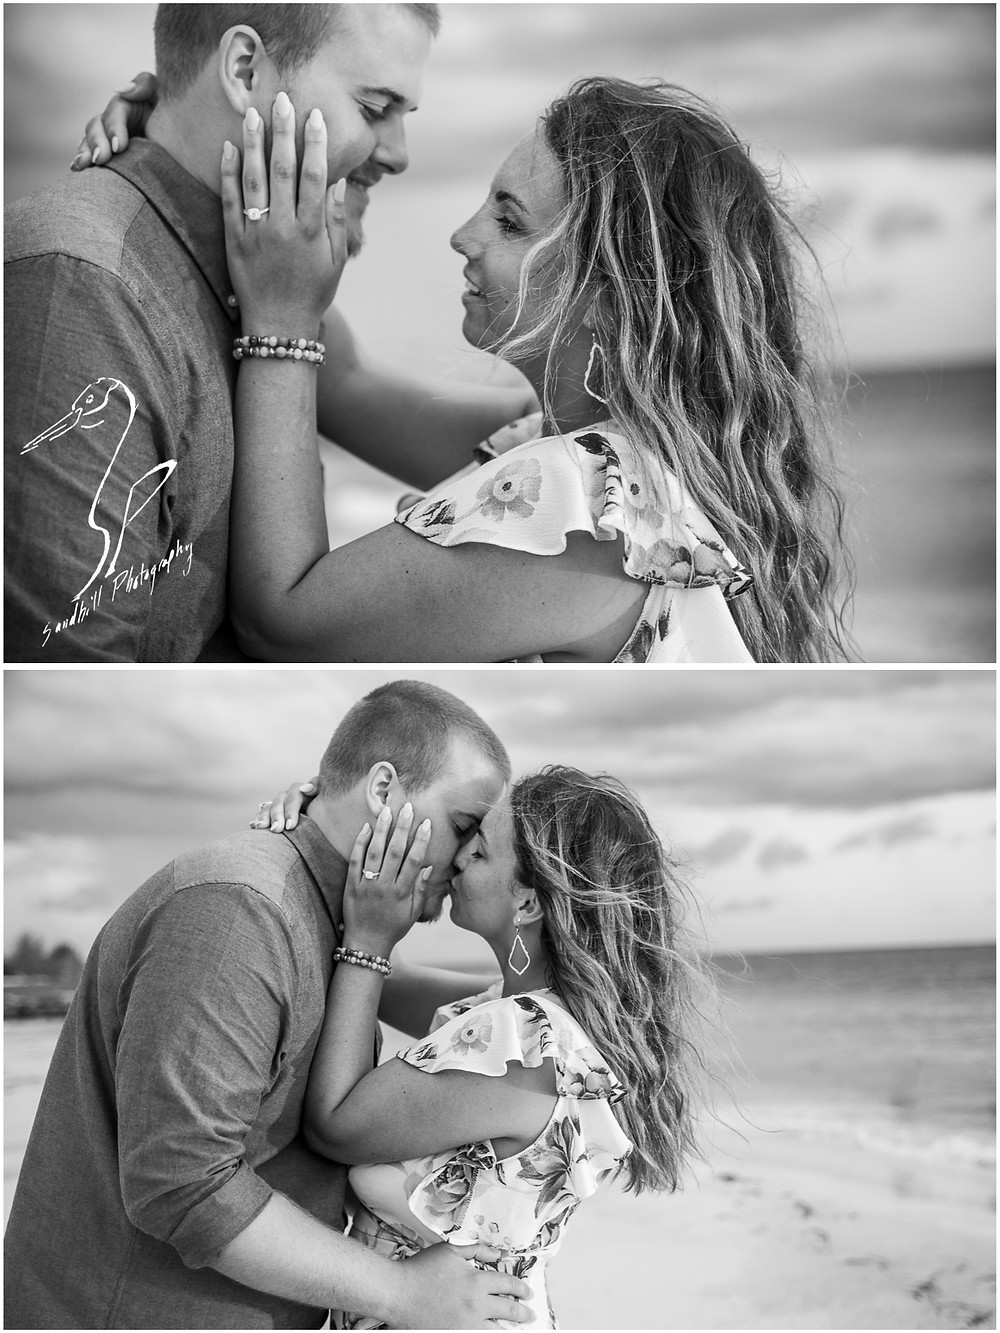 Bradenton Beach Engagement Photography, black and white images of an engaged couple embracing with her hand on his cheek